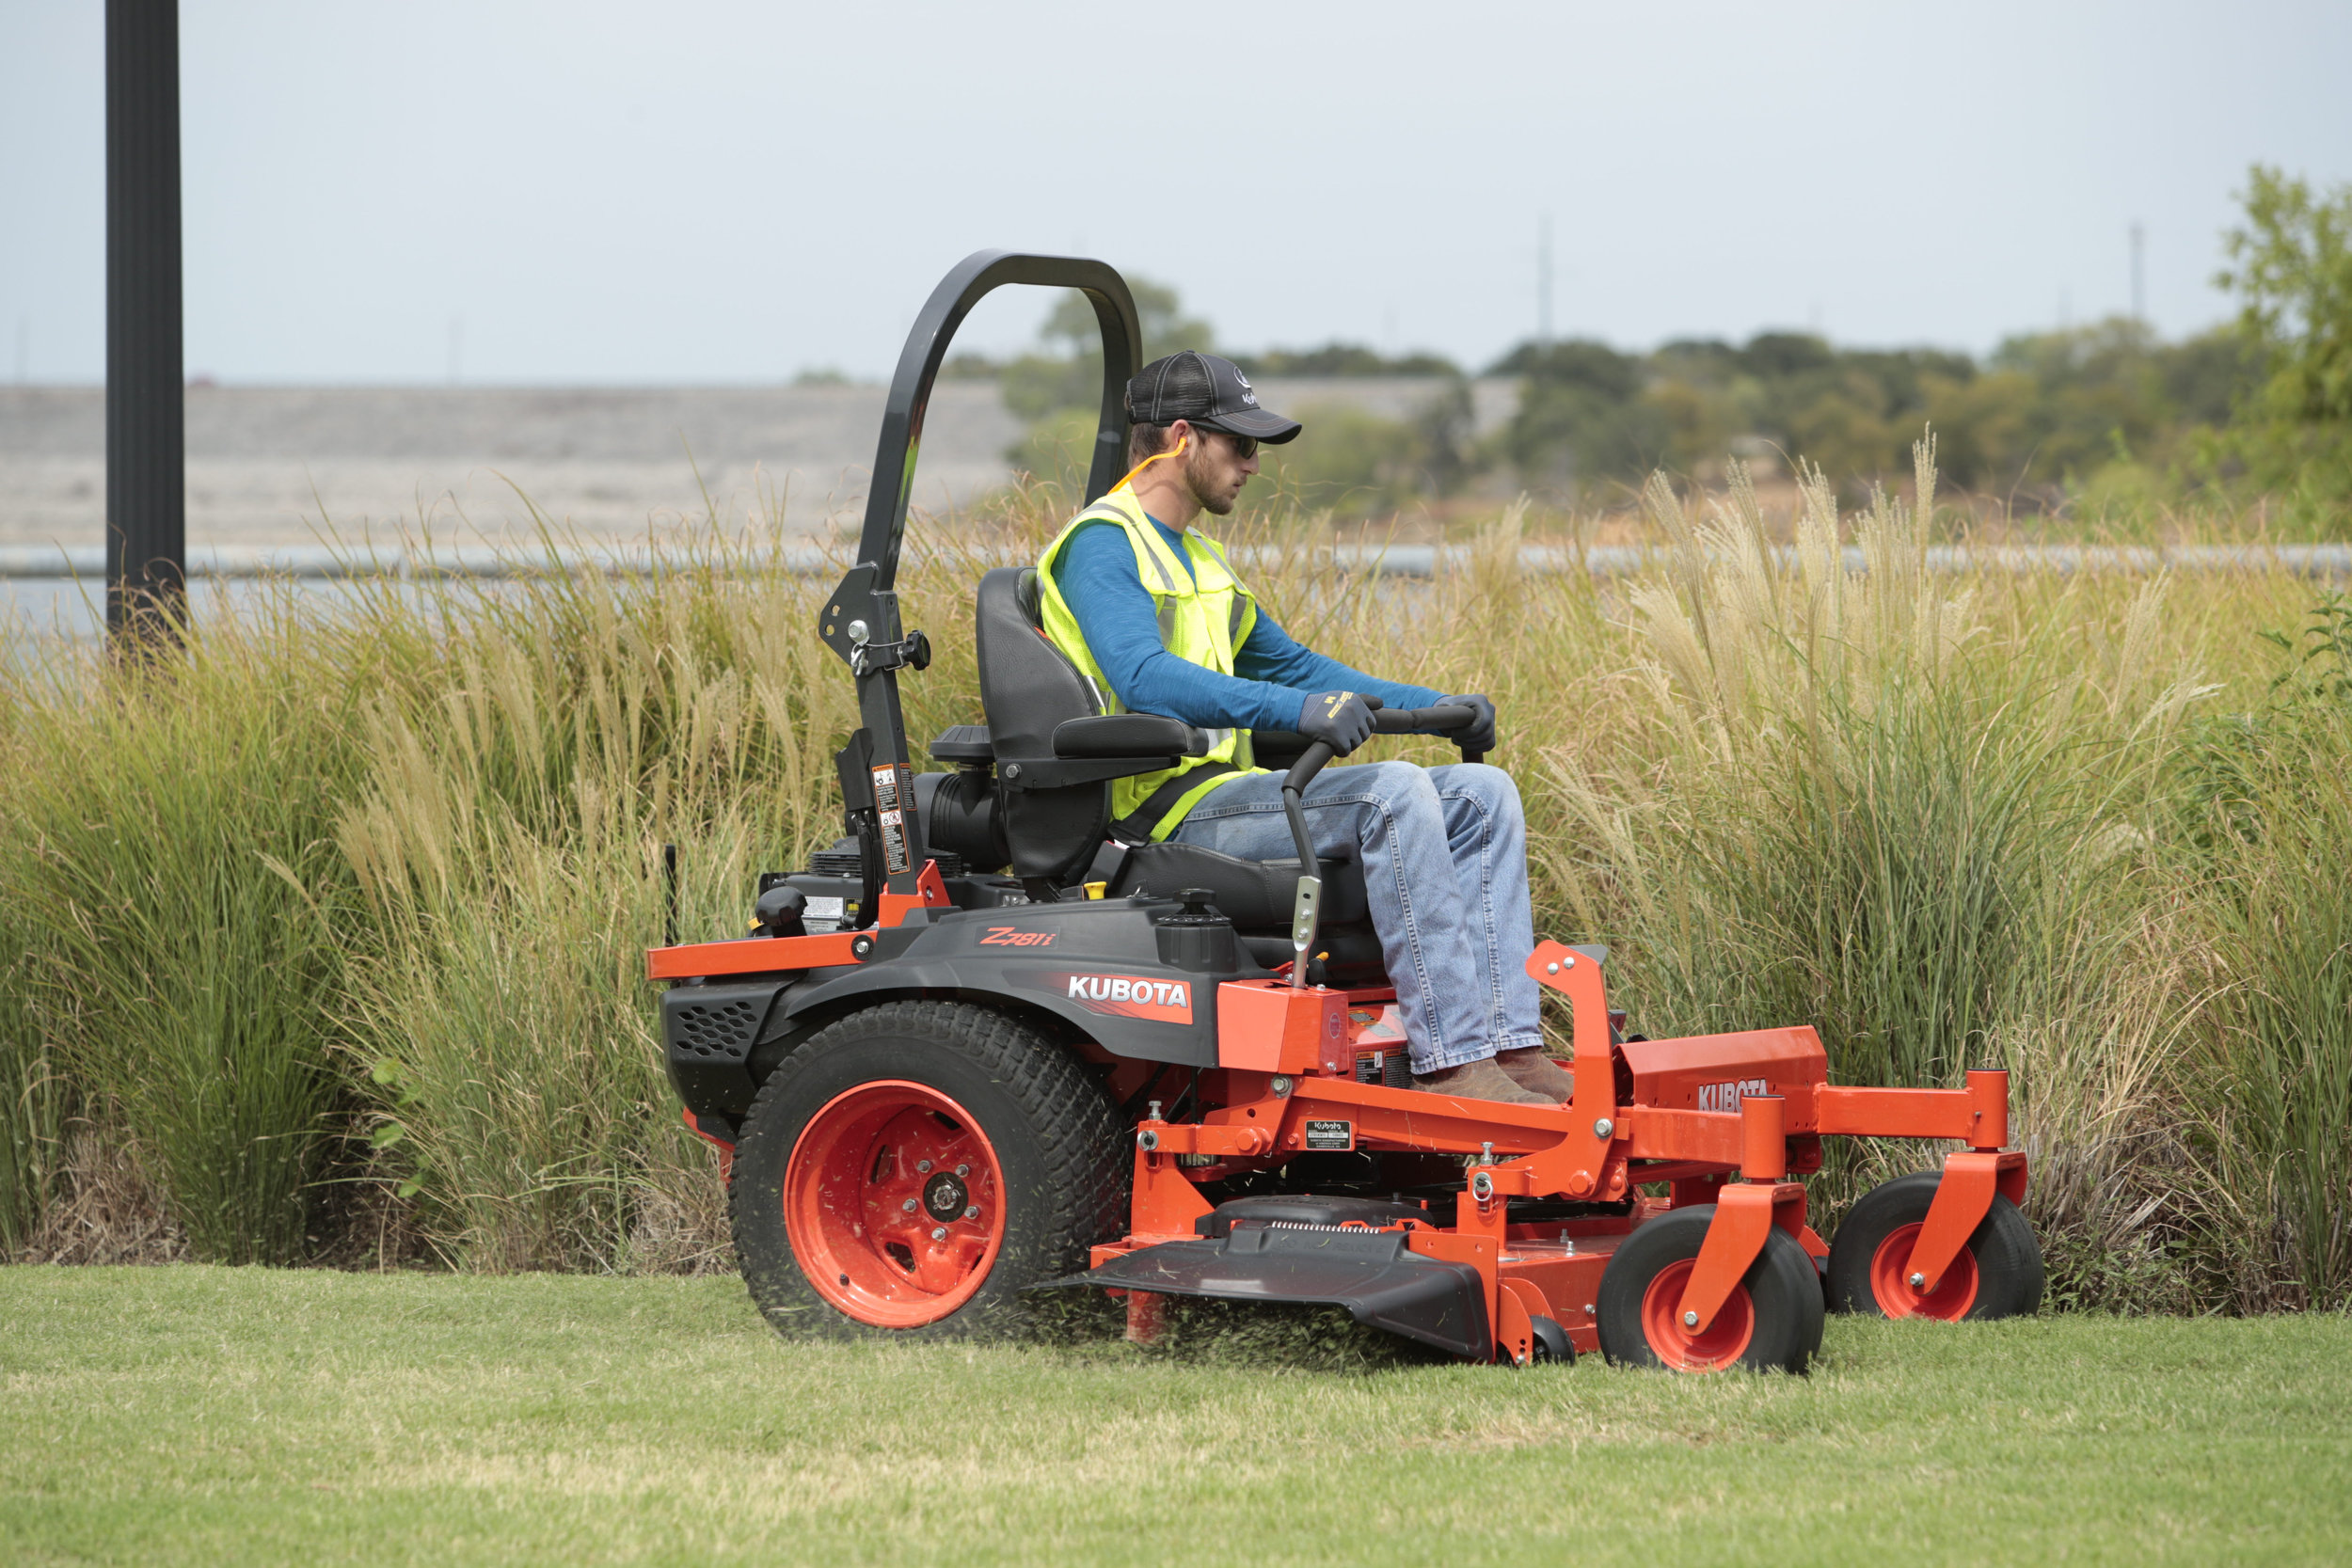 """Mowers - With mower decks ranging from 42"""" to 60"""" and engines reaching 21.1 HP to 29.5 HP, the Z Series can handle any terrain while giving you all the advantages of a zero-turn mower"""